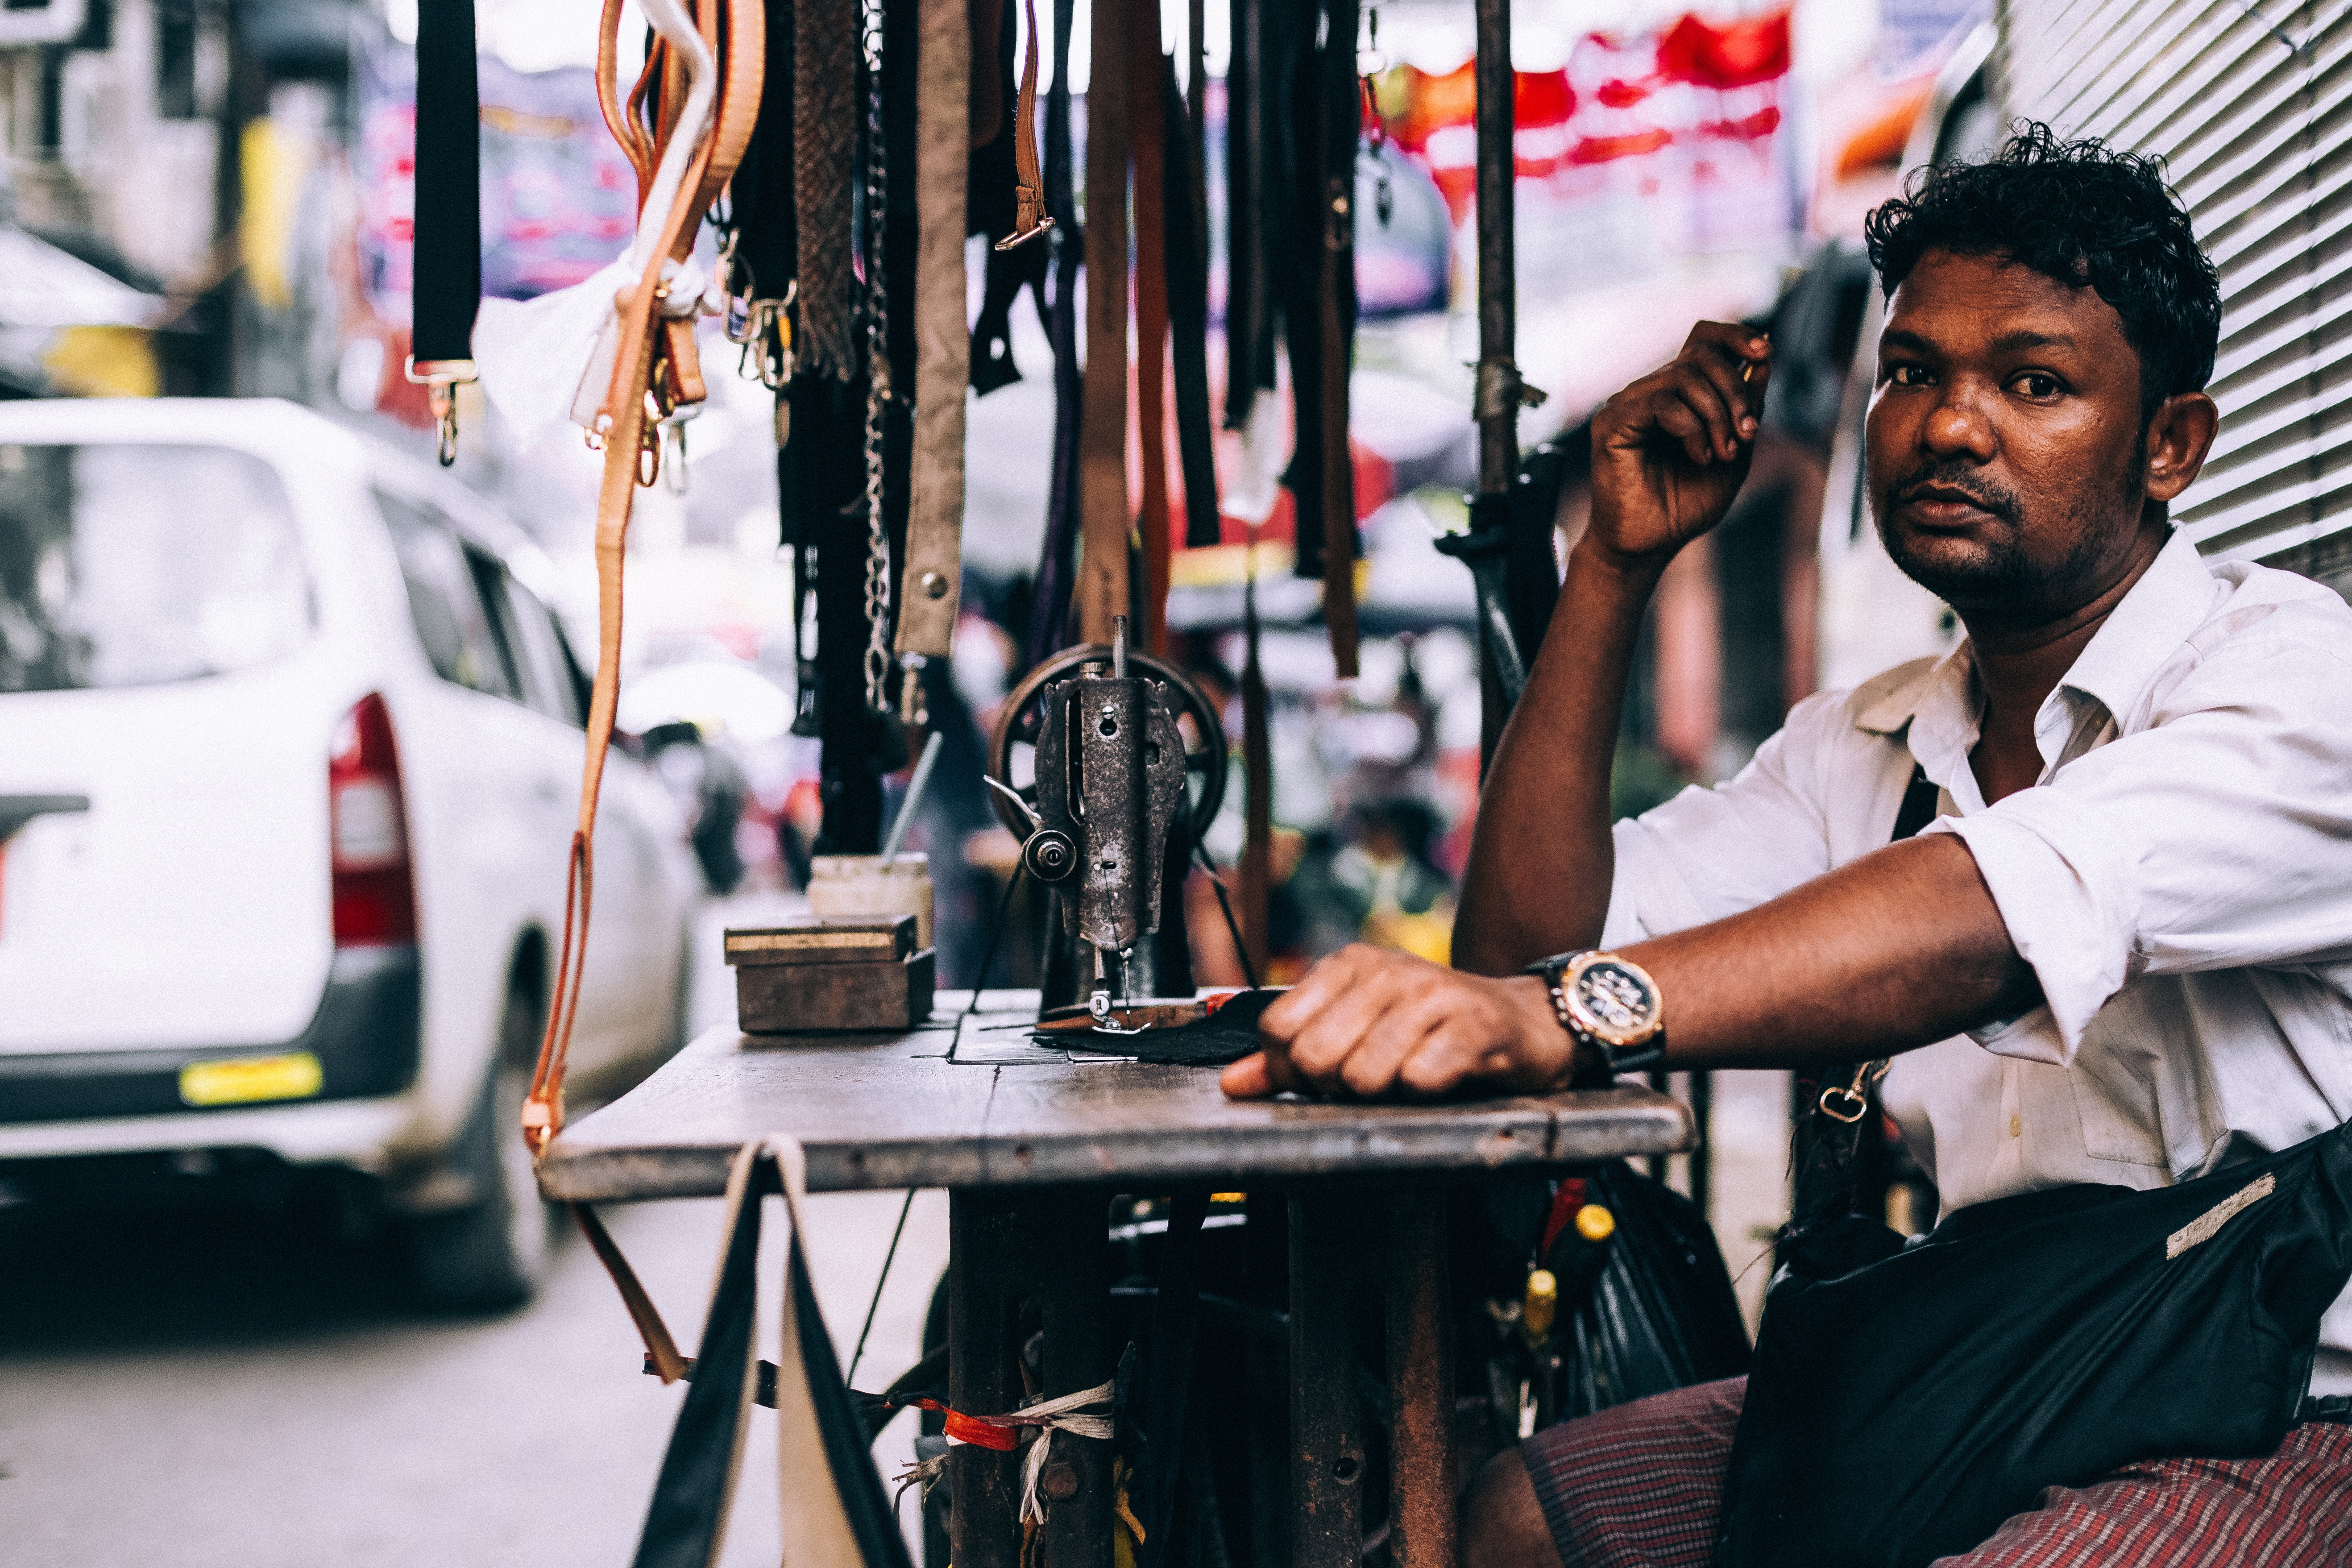 Is entrepreneurship driving India's economic inequality even higher?